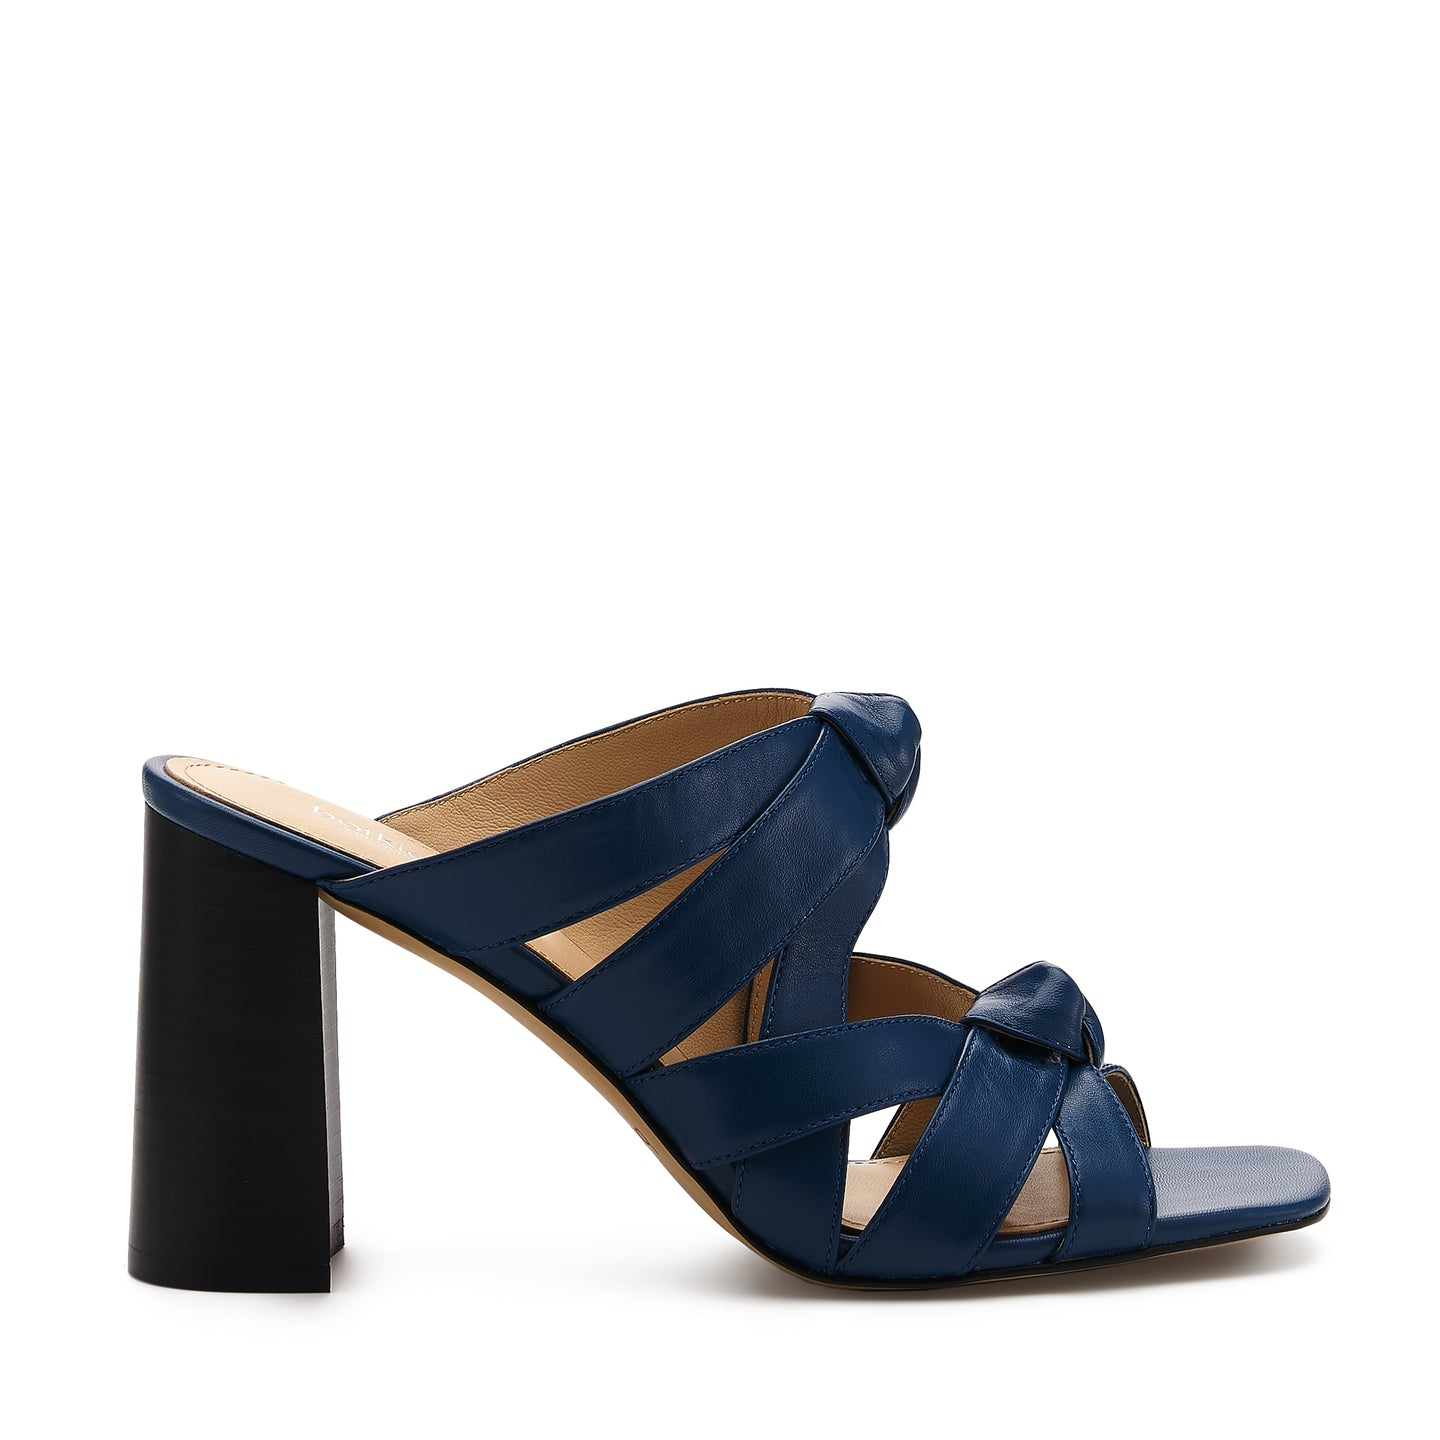 raffe multi strap mule galaxy blue side